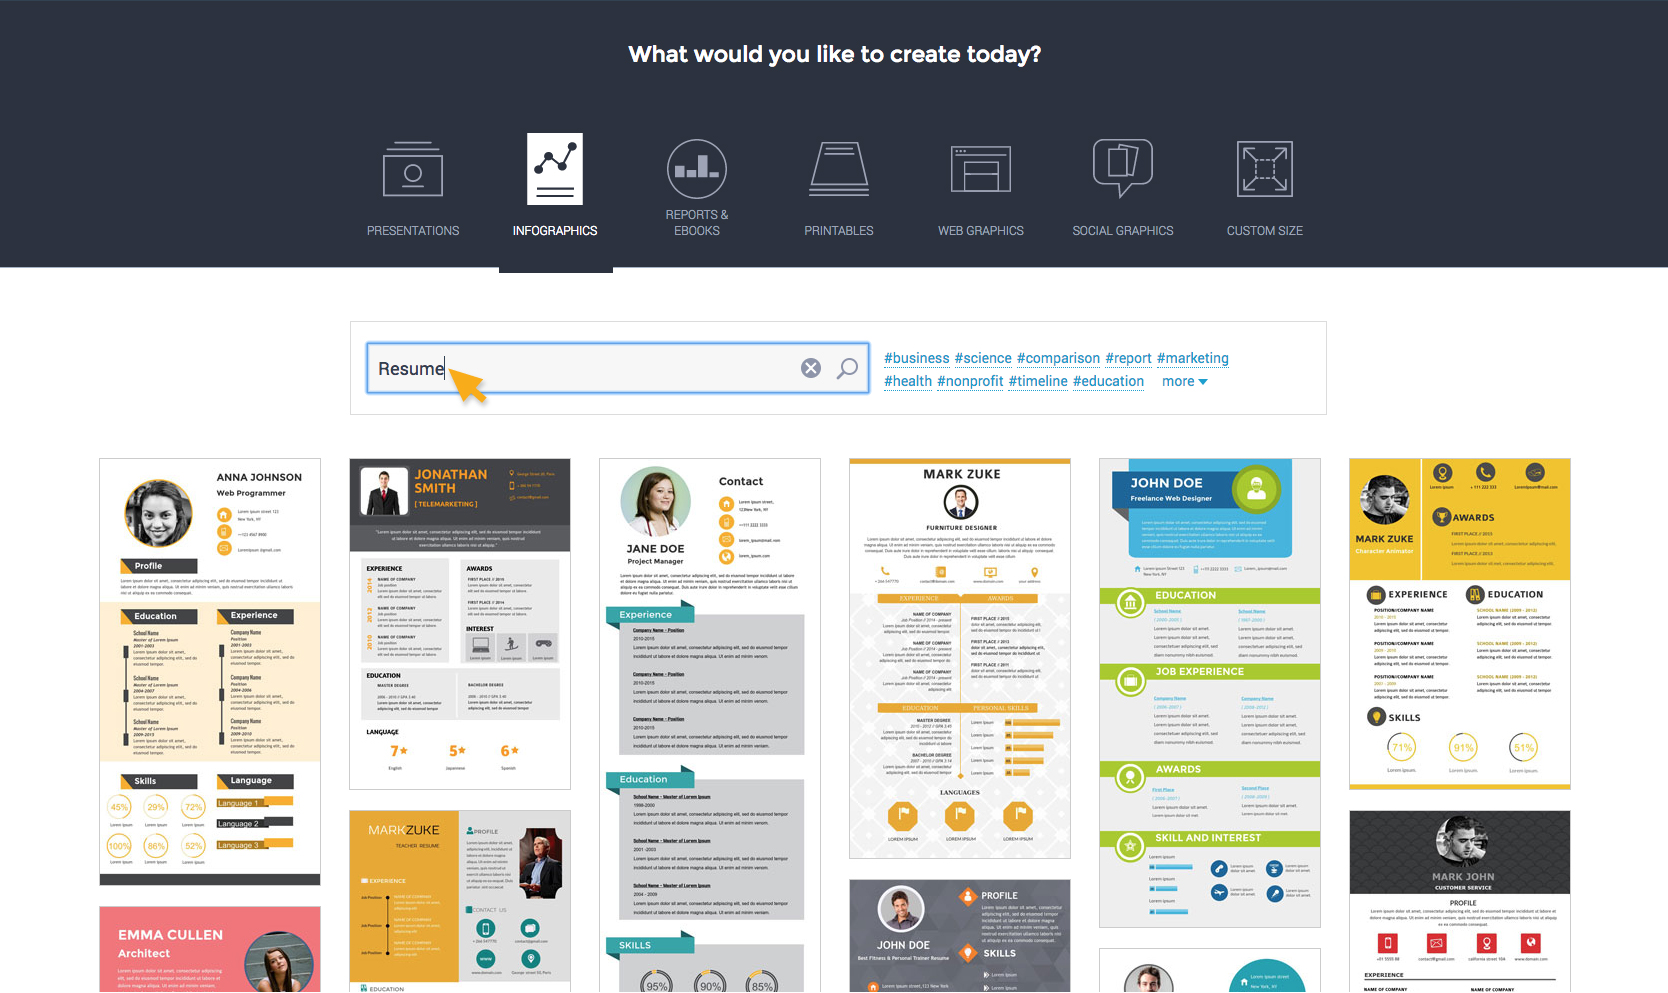 How to Create a Resume | Create Interactive Online Presentations ...